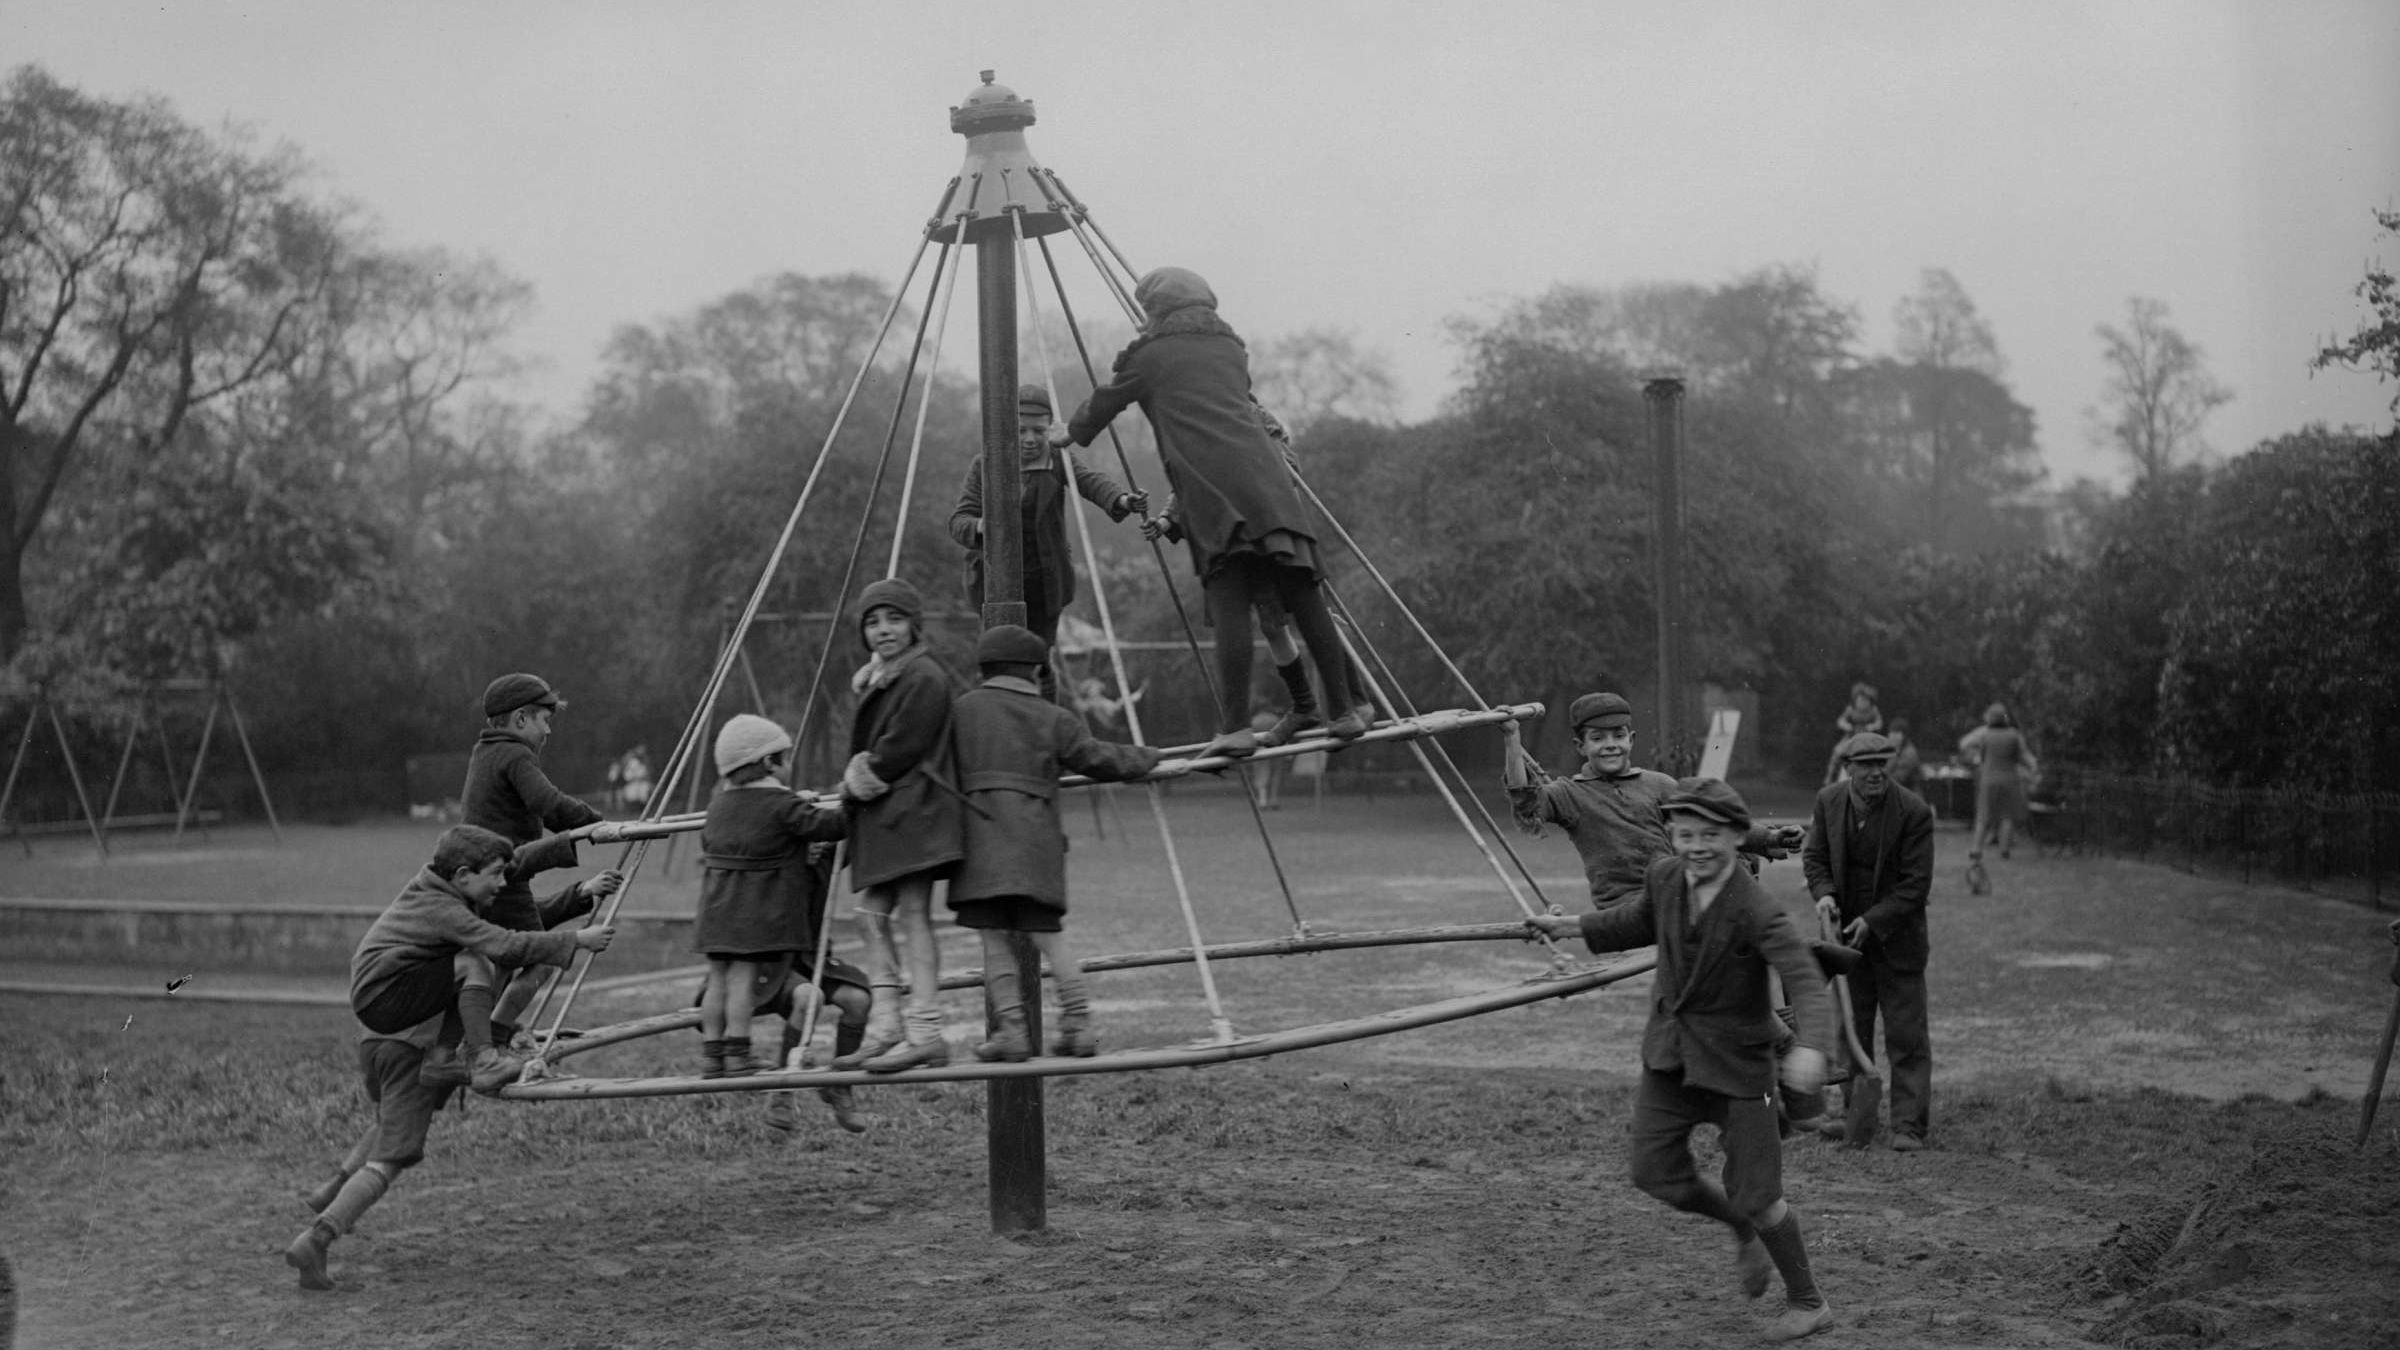 10 Pieces of Playground Equipment that Nearly Killed Your Grandparents